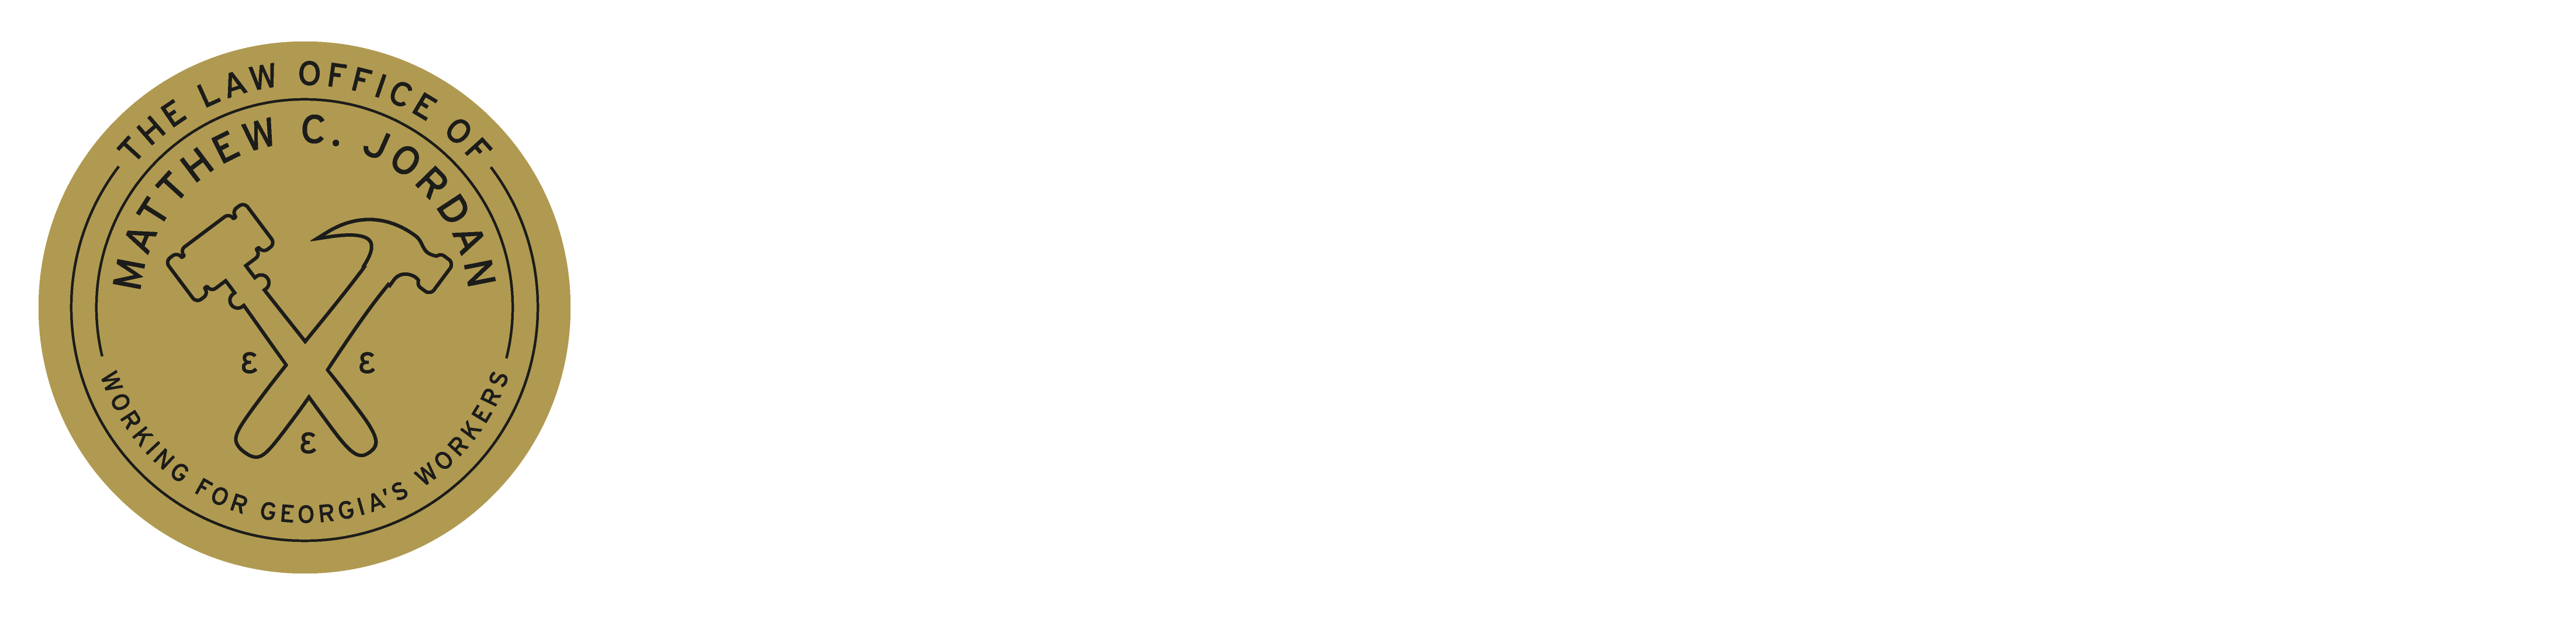 THE LAW OFFICE OF MATTHEW C. JORDAN